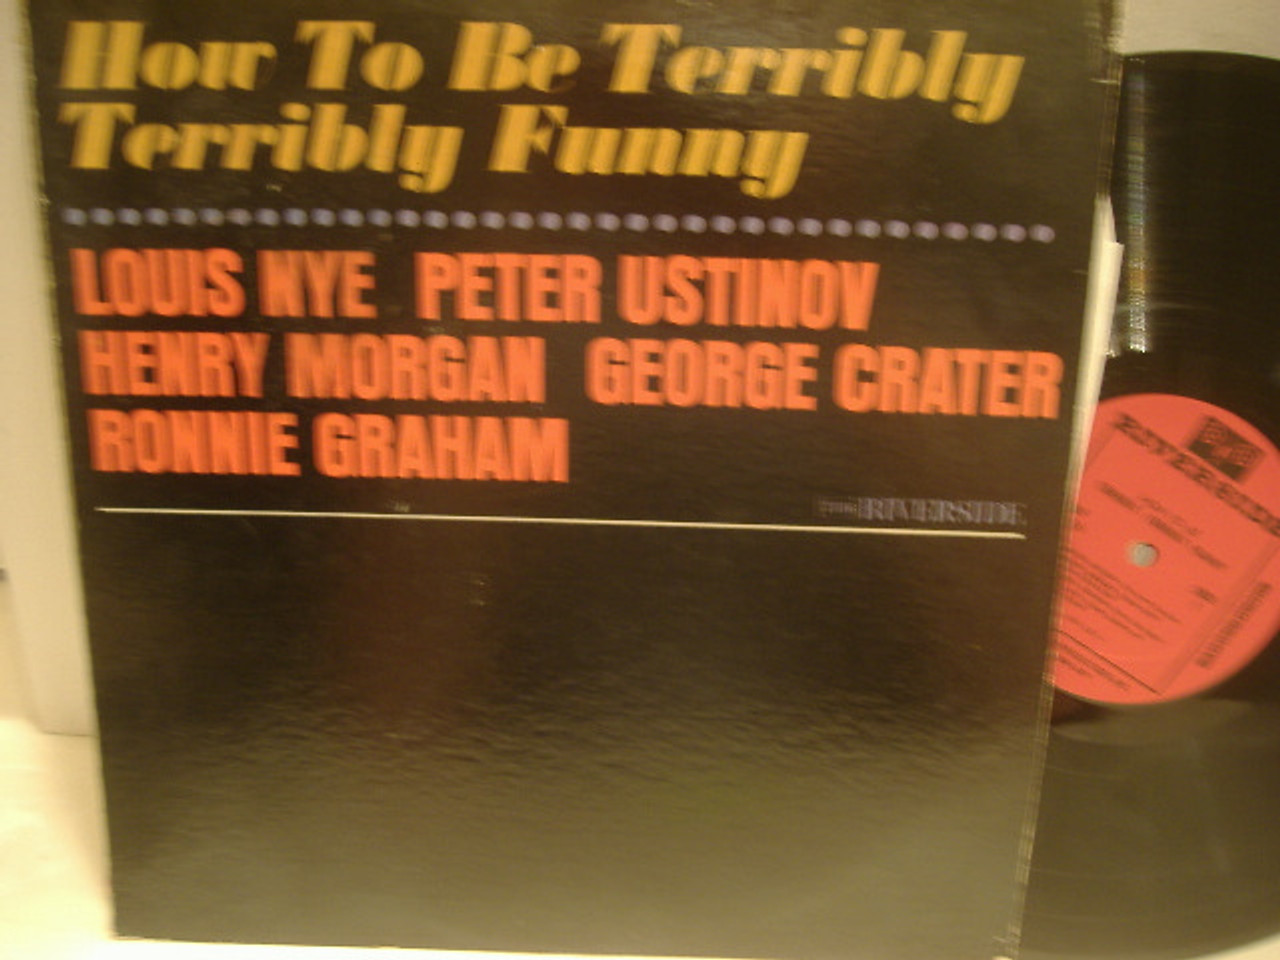 Ustinov, Peter Louis Nye LP Signed Autograph How To Be Terribly Funny